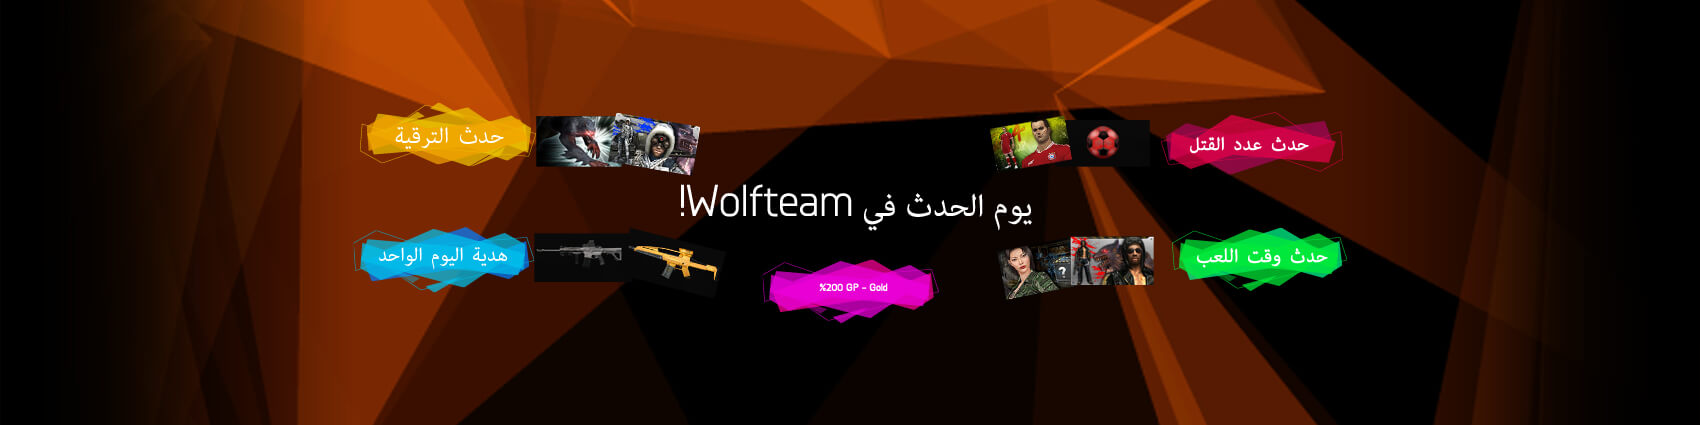 Wolfteam Events